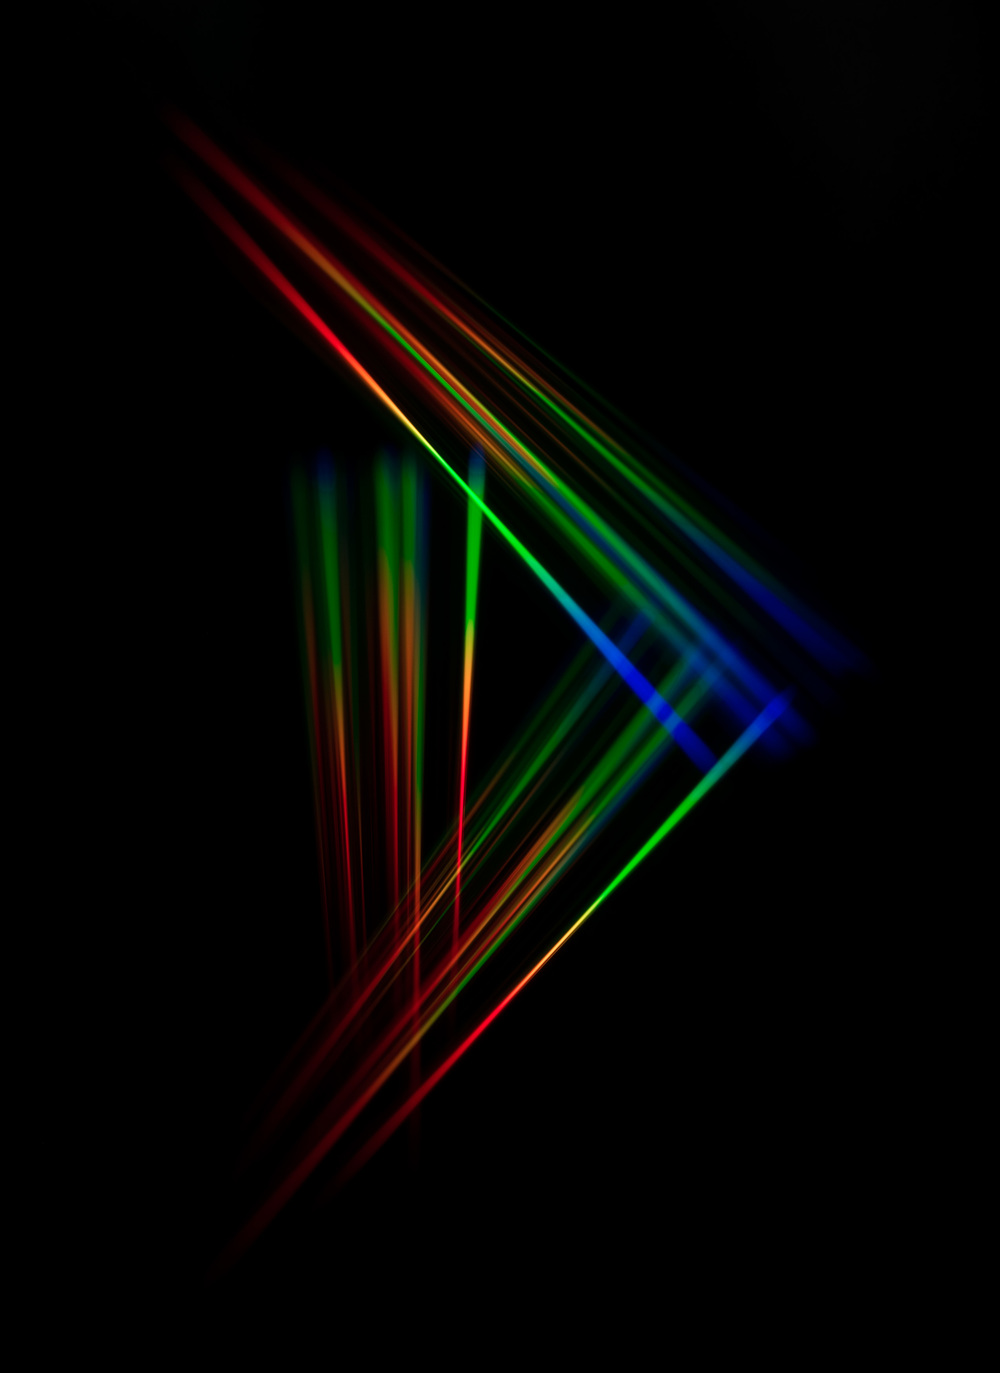 Diffraction Study II,  2016 Archival Pigment Print 40 x 30 inches